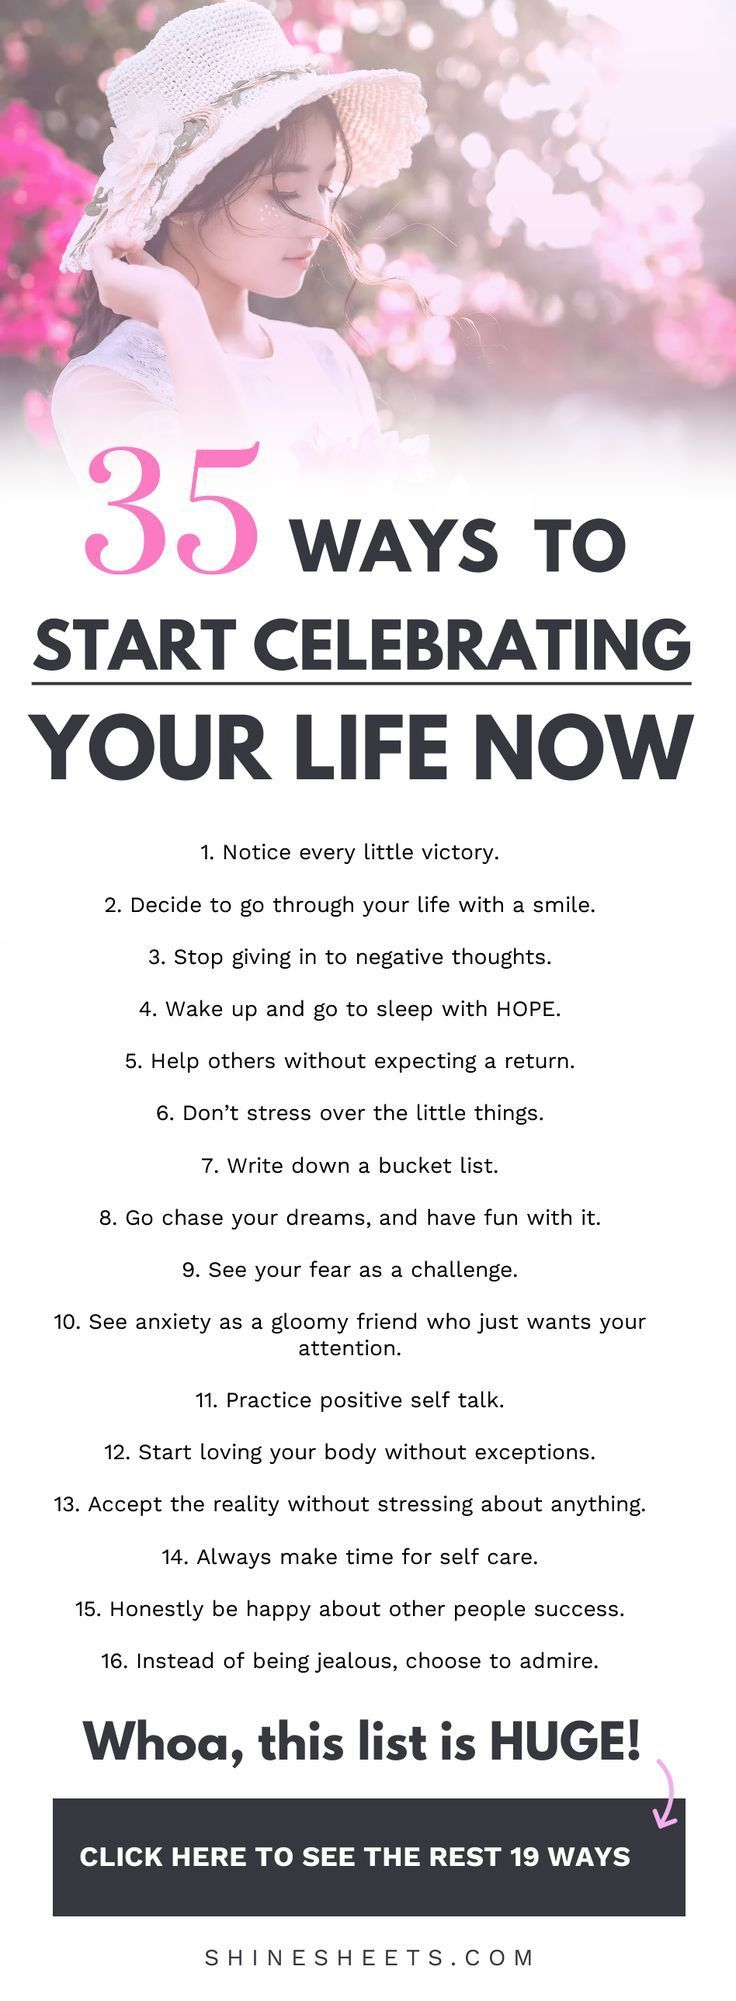 35 Ways To Start Celebrating The Life You Have